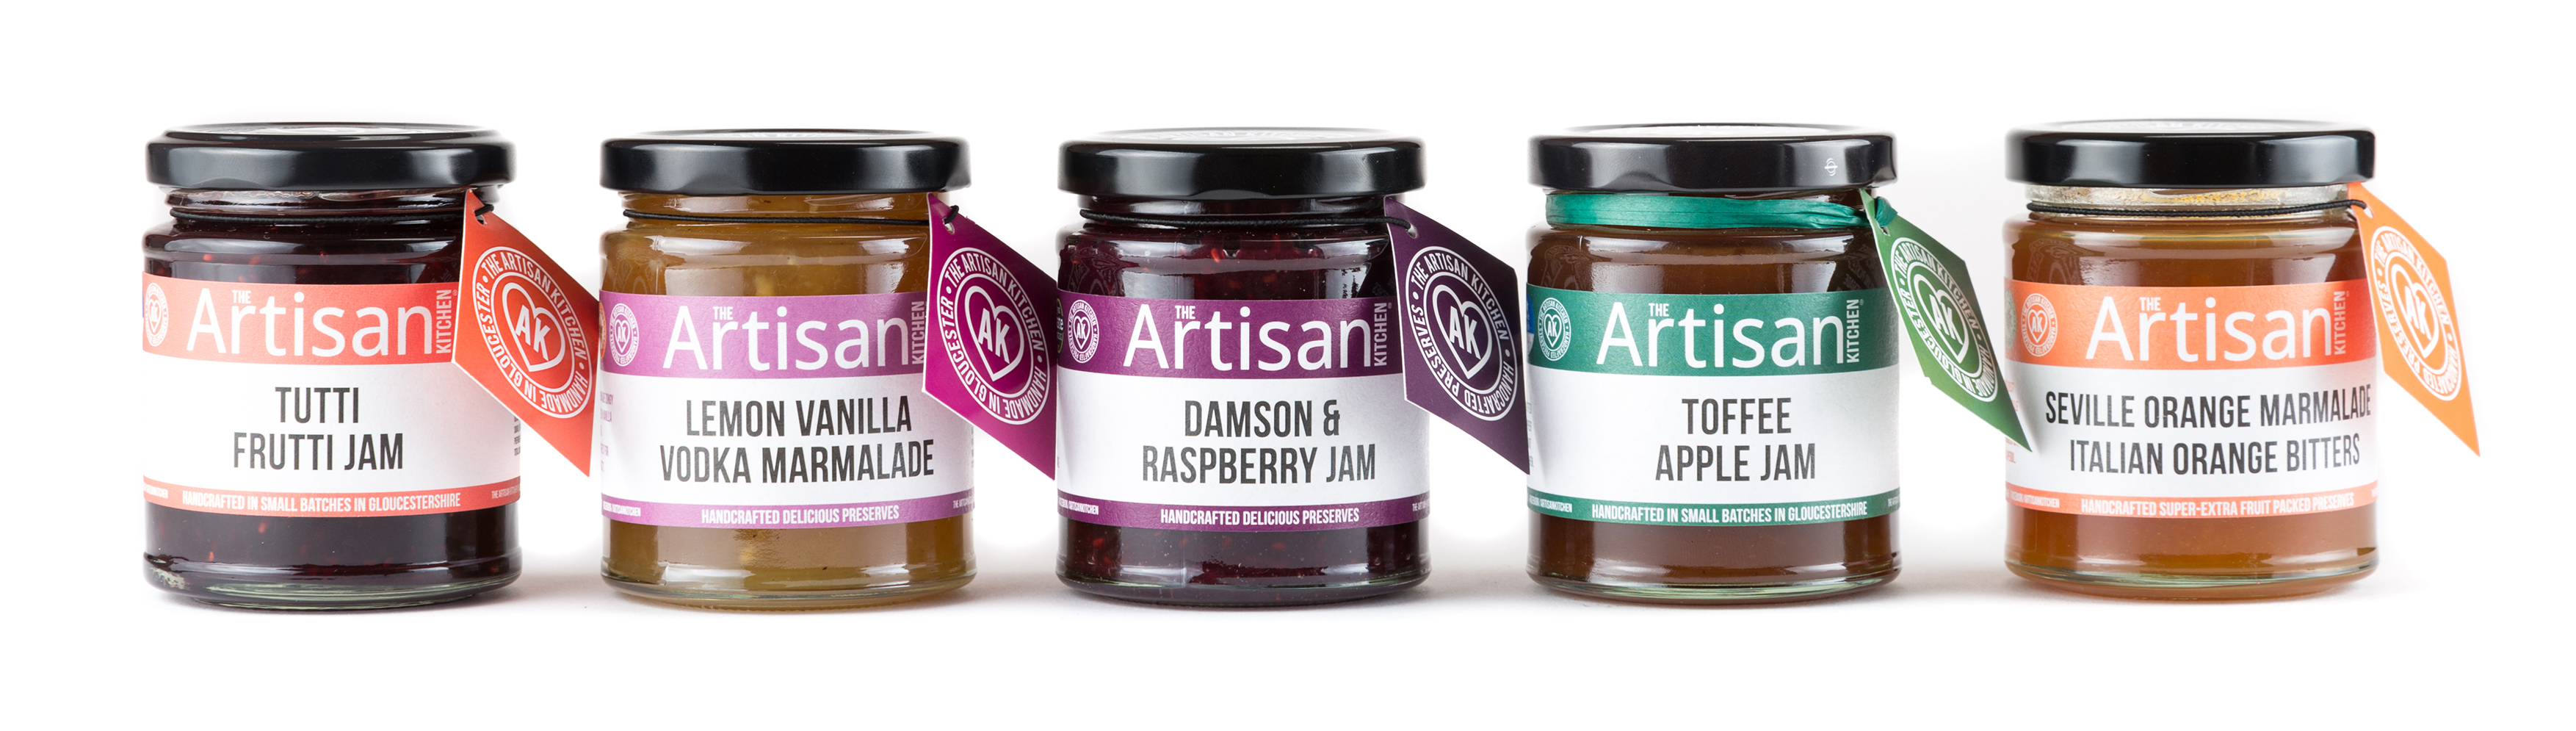 The Artisan Kitchen Packaging Design by Toast Food